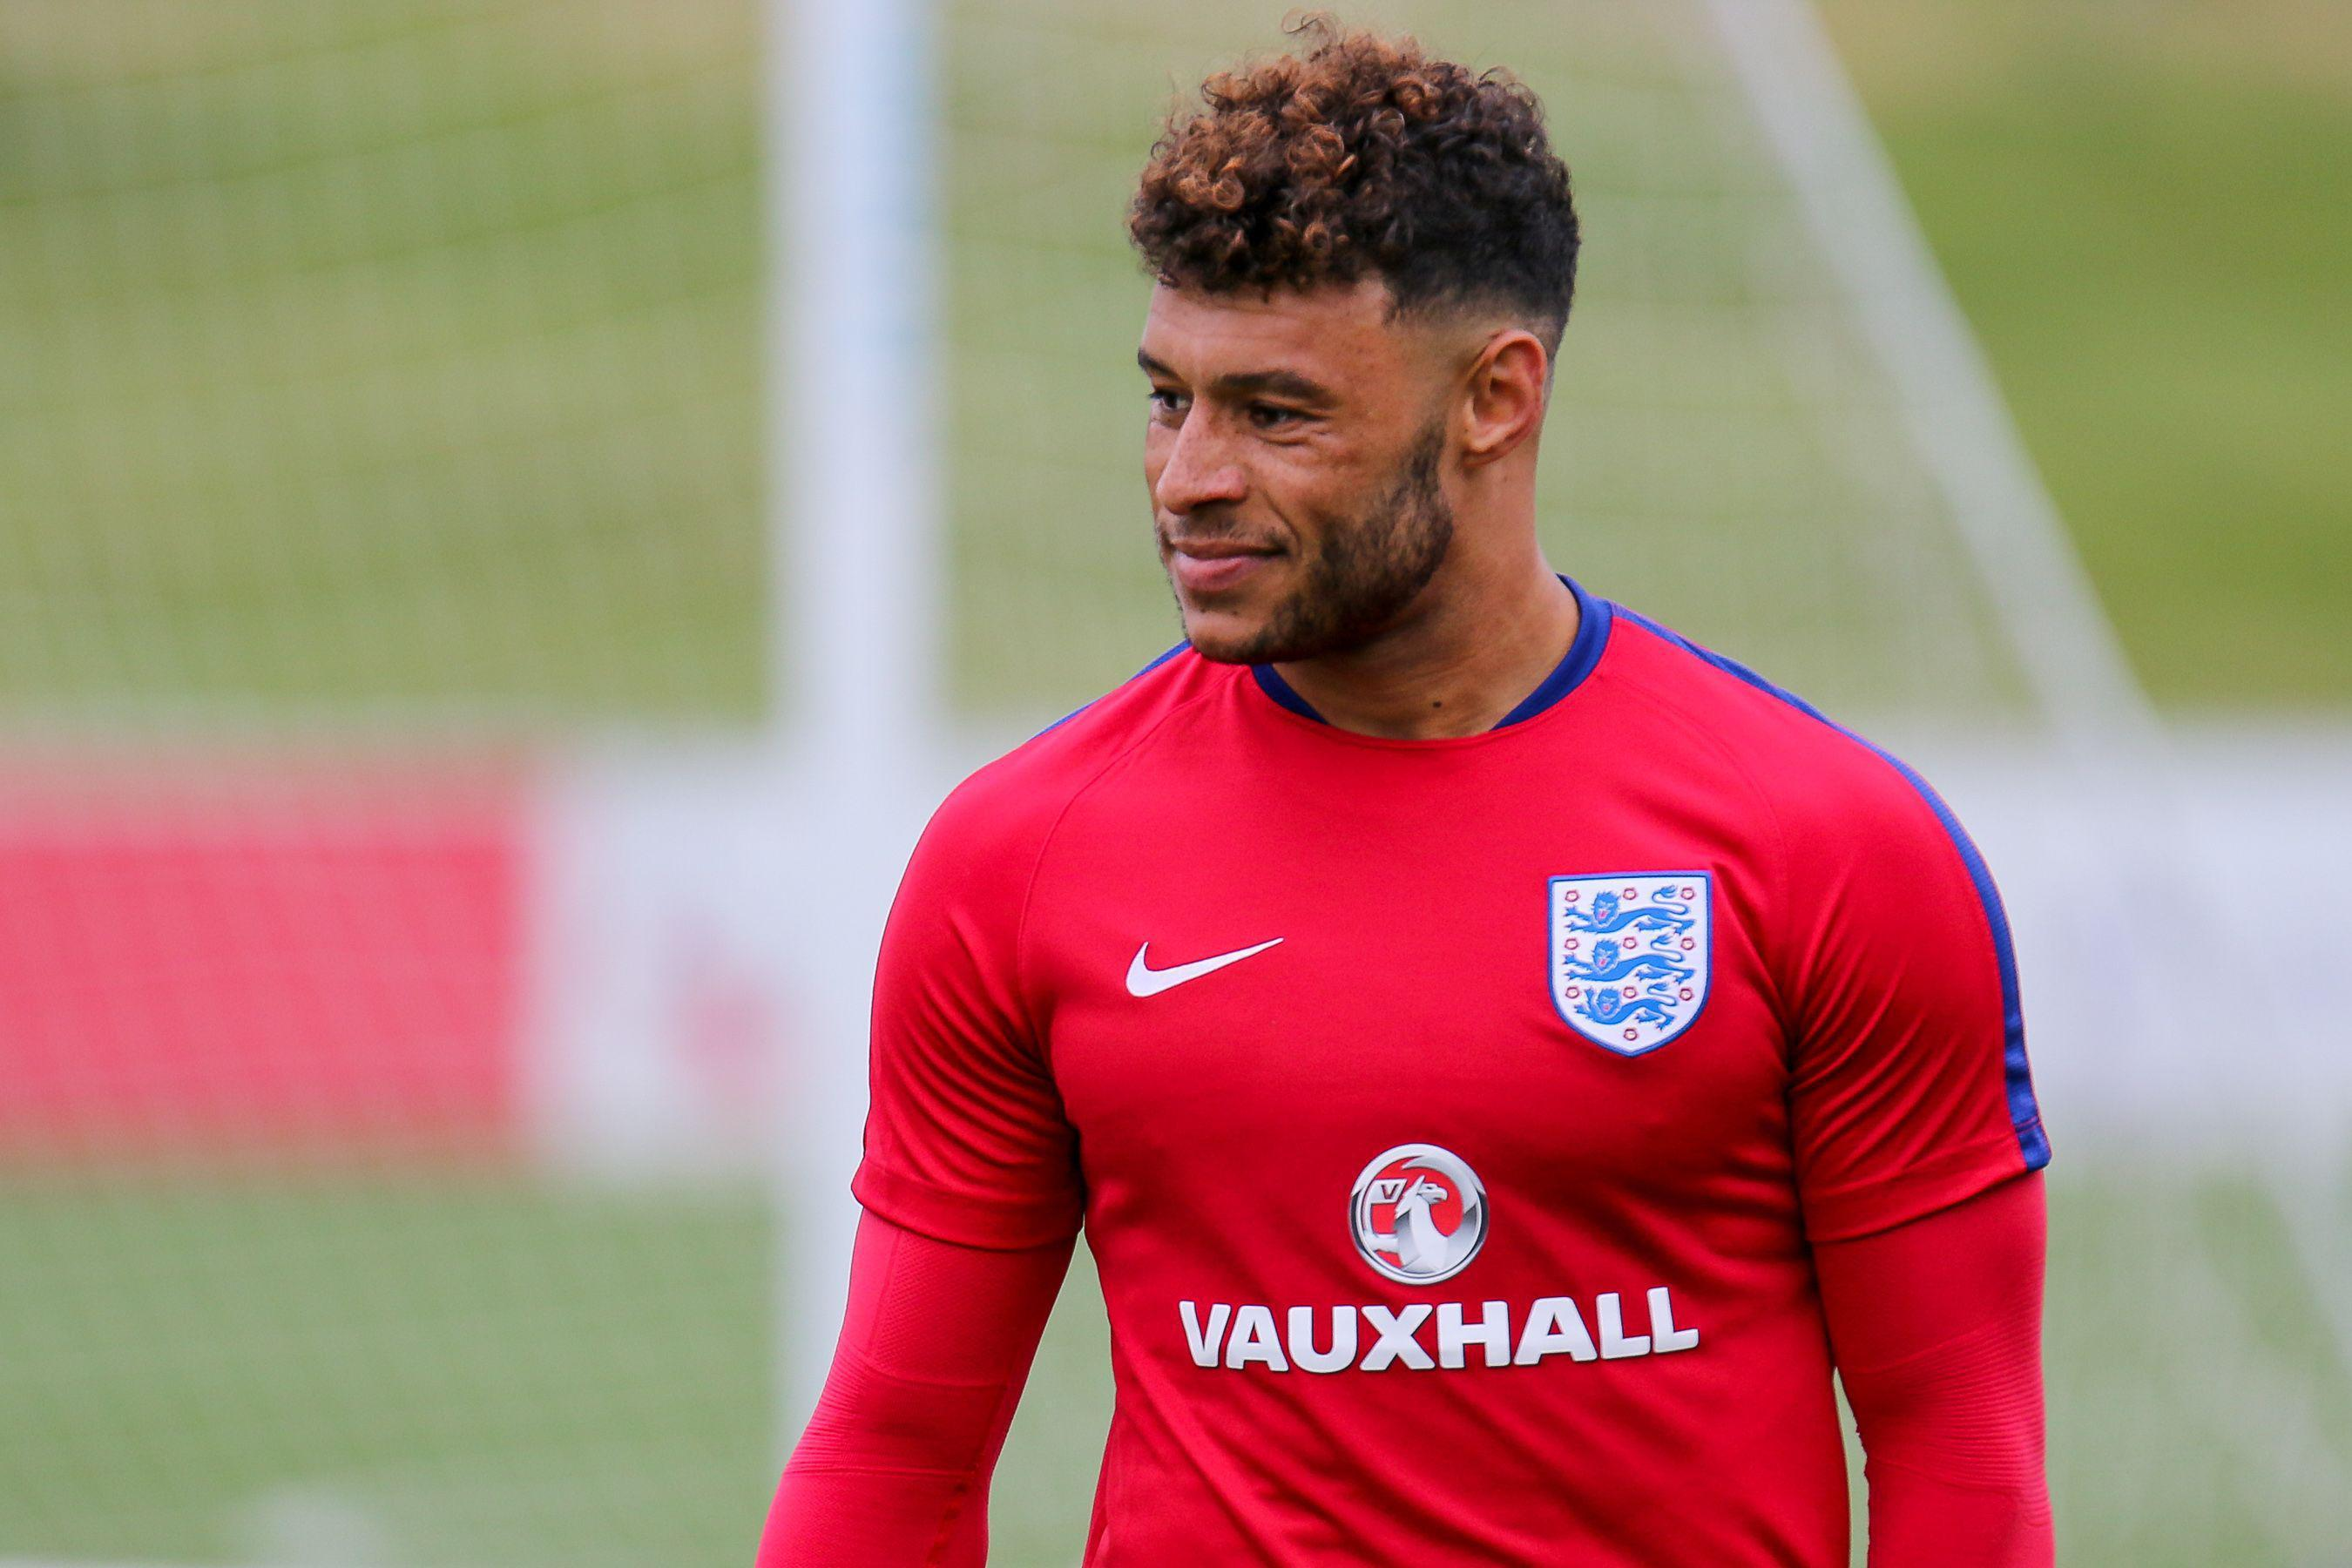 Chelsea fear Alex Oxlade-Chamberlain could still join Liverpool over them